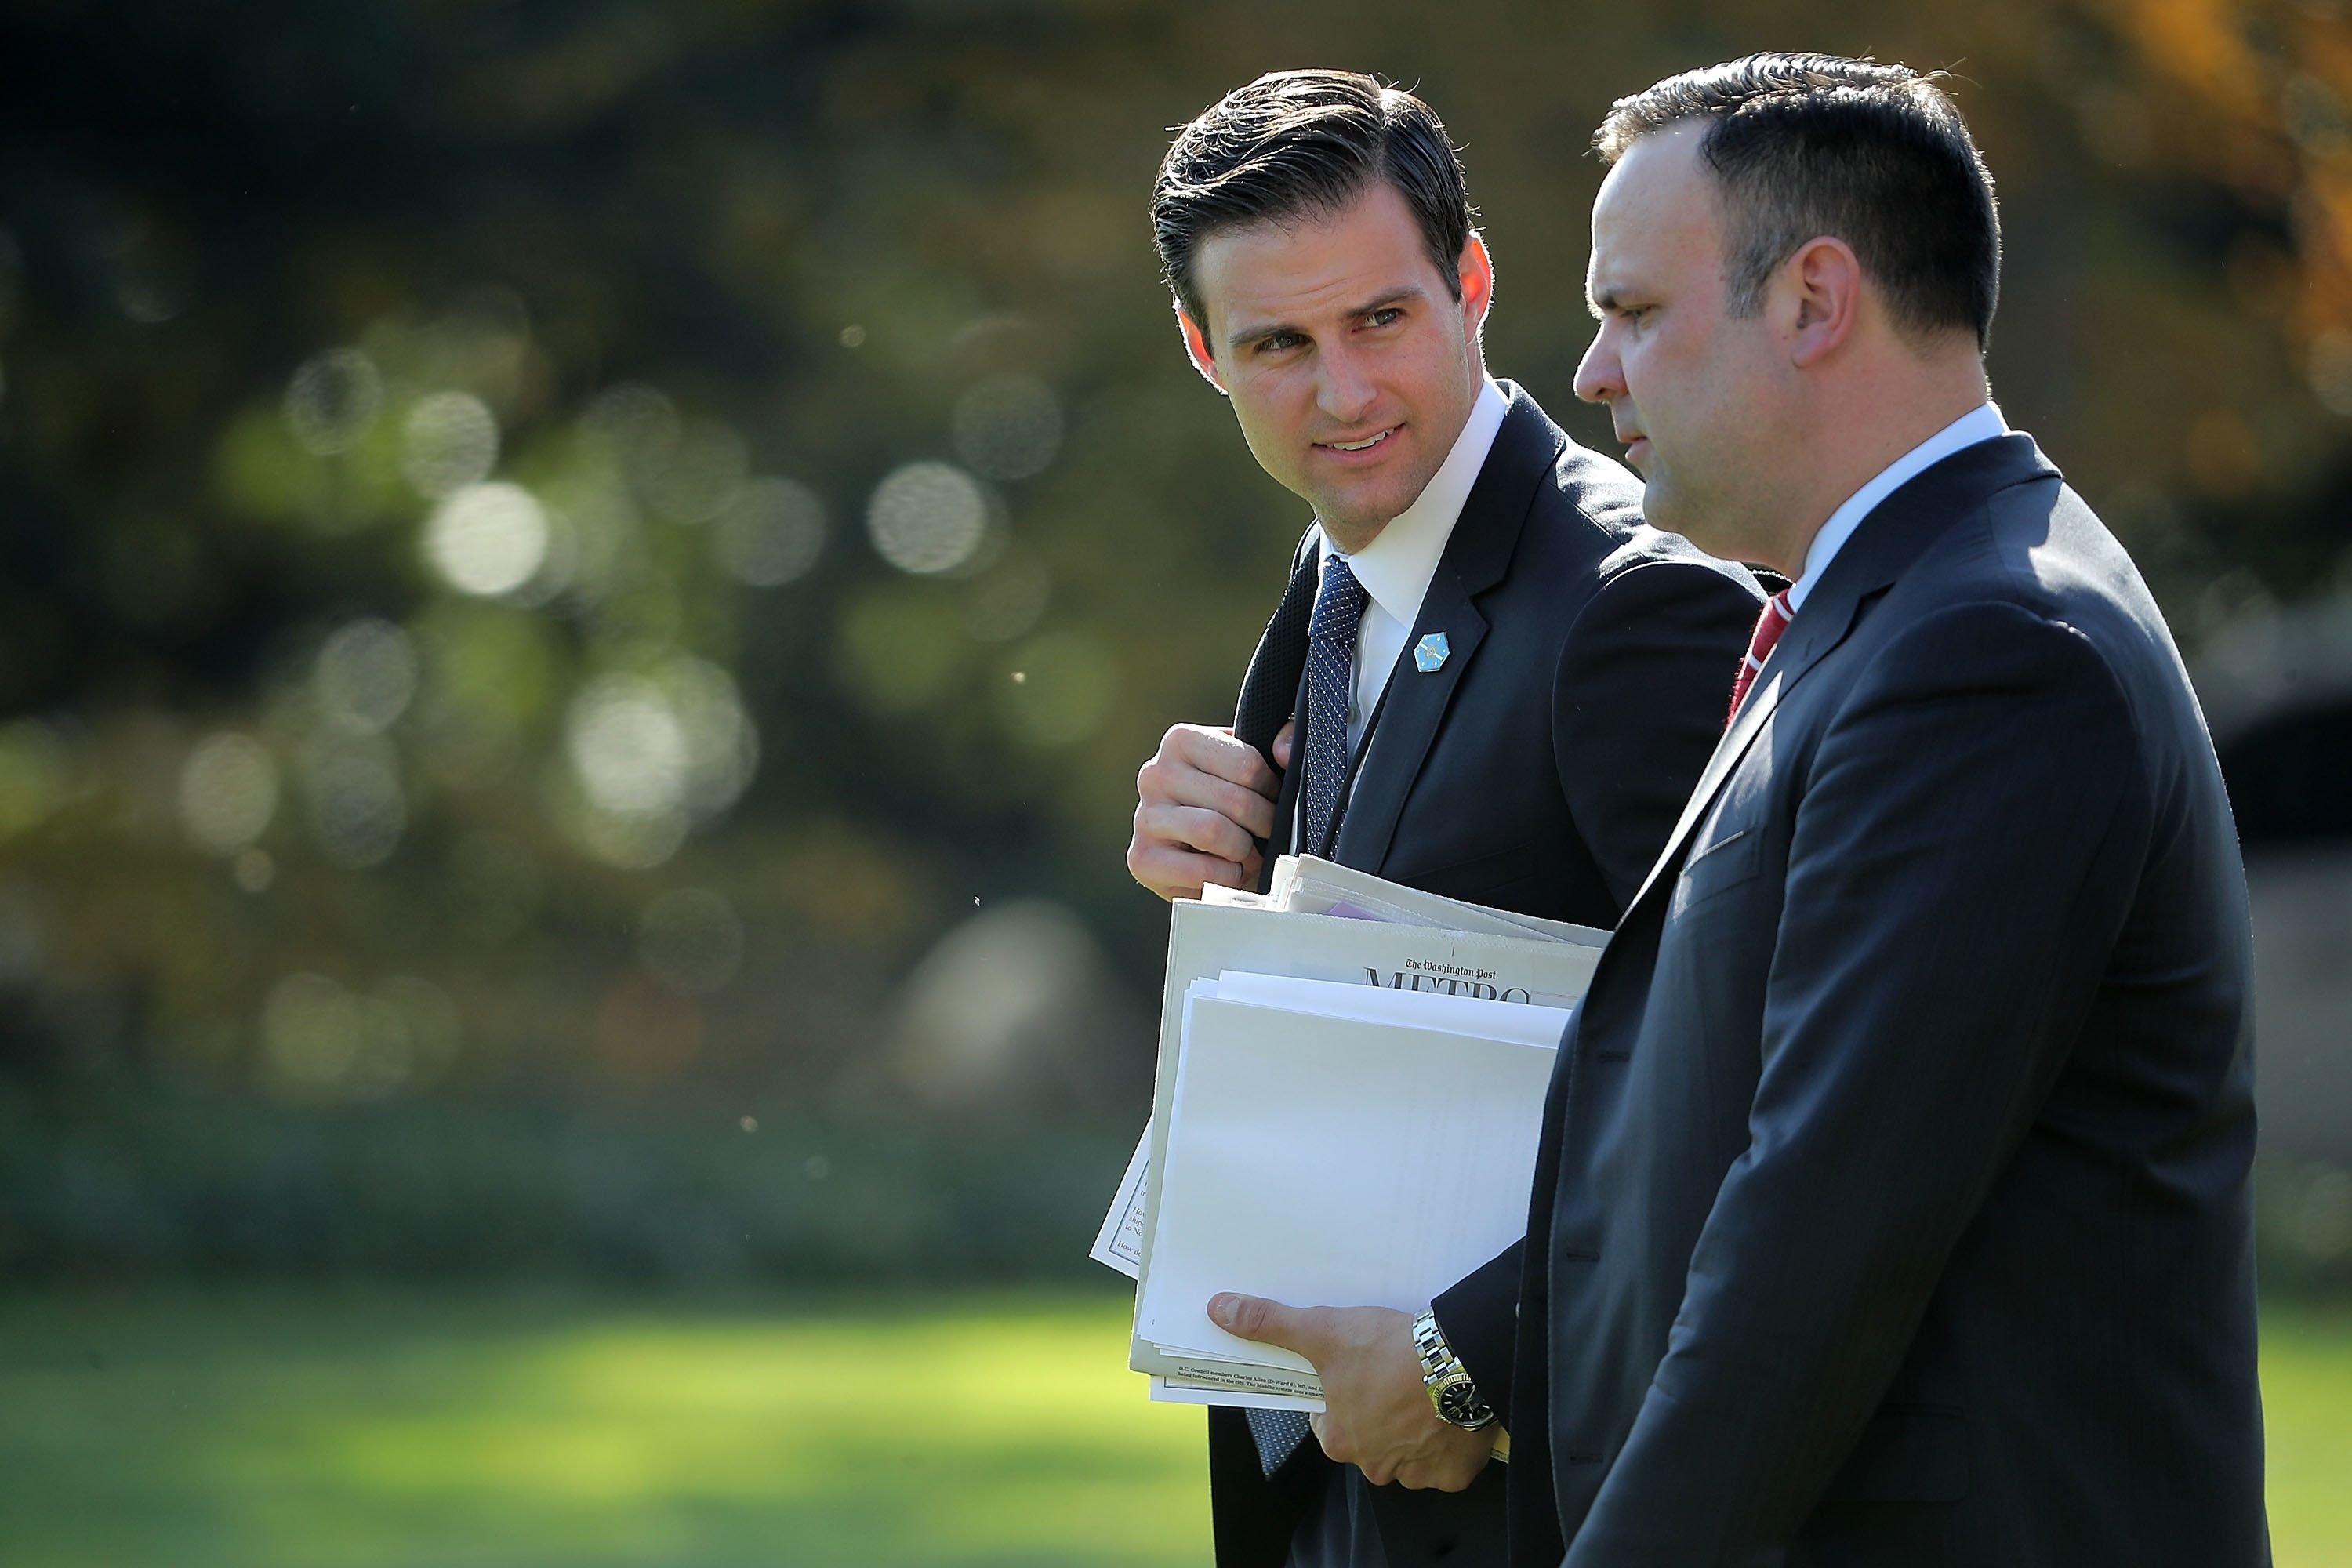 Trump personal aide fired, escorted out without coat